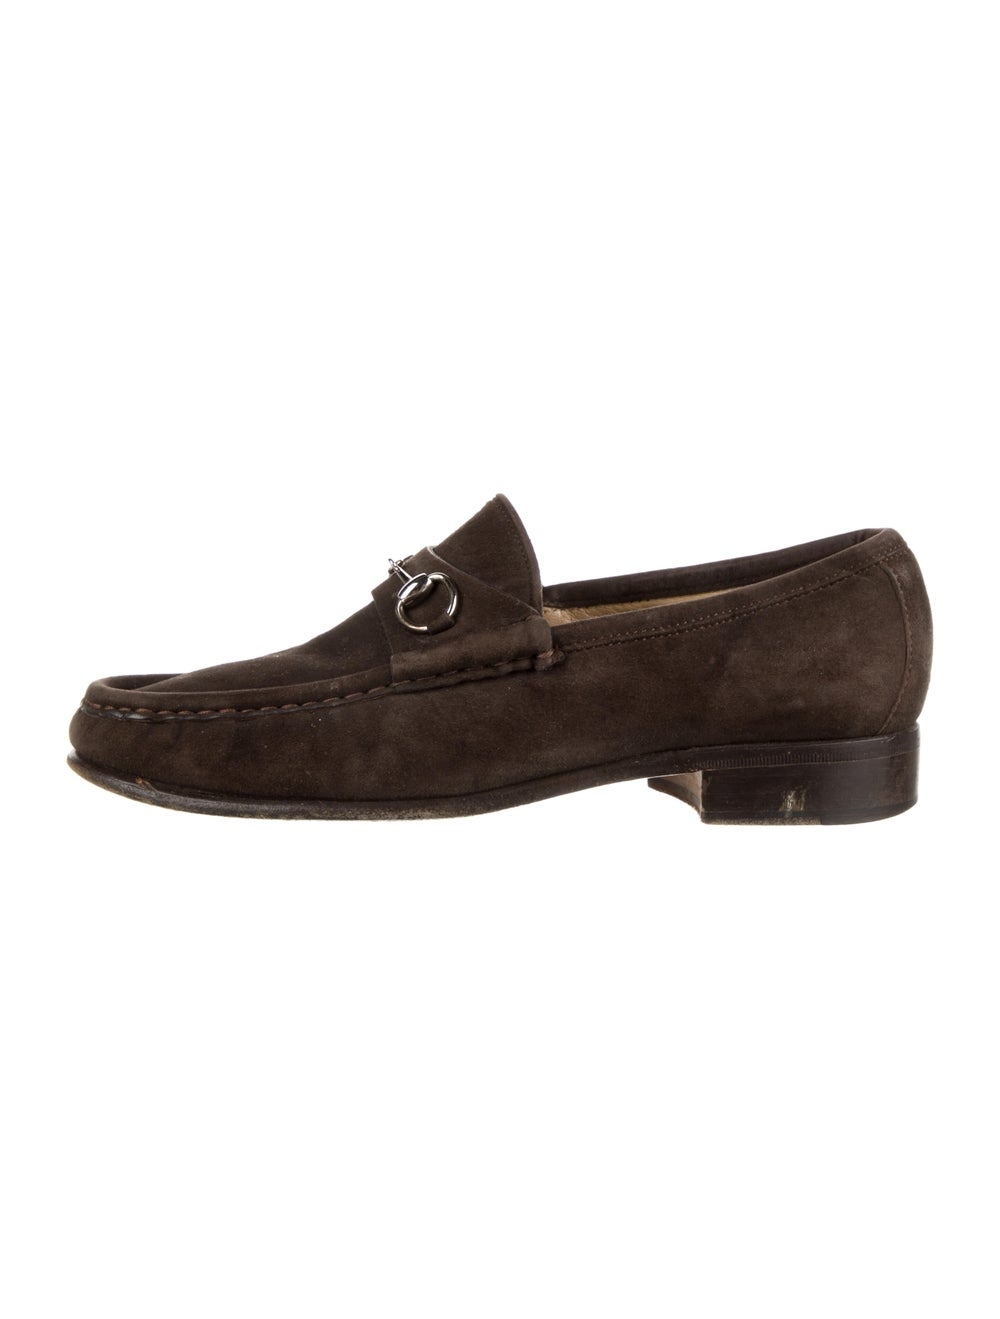 Gucci Horsebit Accent Suede Loafers Brown - image 1